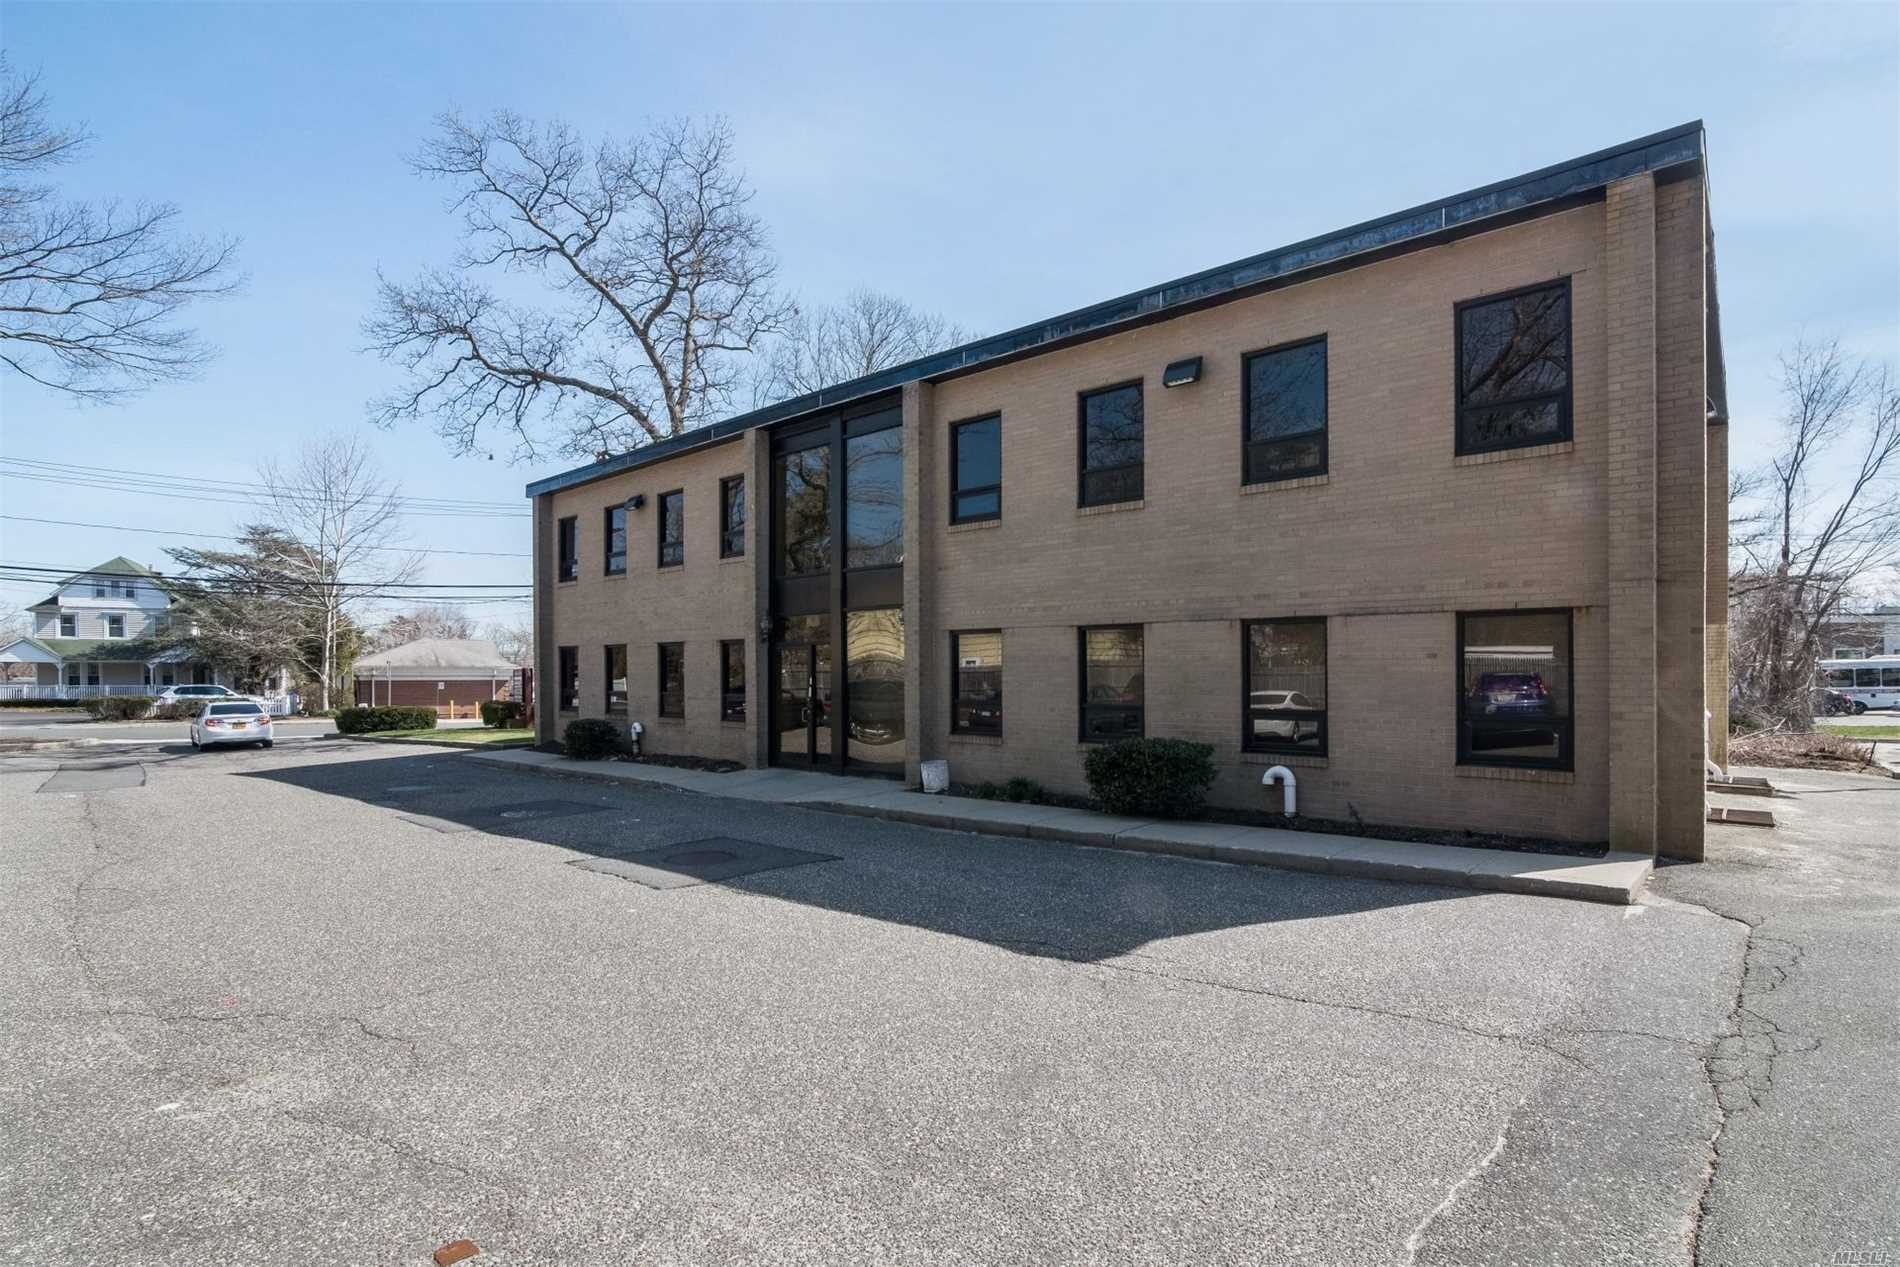 2 Story Approx. 4900 Sq Ft Brick Office Building. Currently 50% Occupied. 3 Suites. Main Floor - Approx. 1593 Sq Ft. Suite W/Bath & Approx. 850 Sq Ft Suite W/Bath.2nd Floor Approx. 2450 Sq Ft. Suite With 2 Conference Rooms, 4 Offices, File Room, Admin Room, Waiting Room.Mini Kitchen &2 Baths.Updated & In Mint Condition.Deeded Easement For Additional Parking- 33 Spaces & 1 Handicap Parking.Busy Commercial Corridor Off Of W. Main St. Roof & Parking Lot Is Only 10 Years Old.